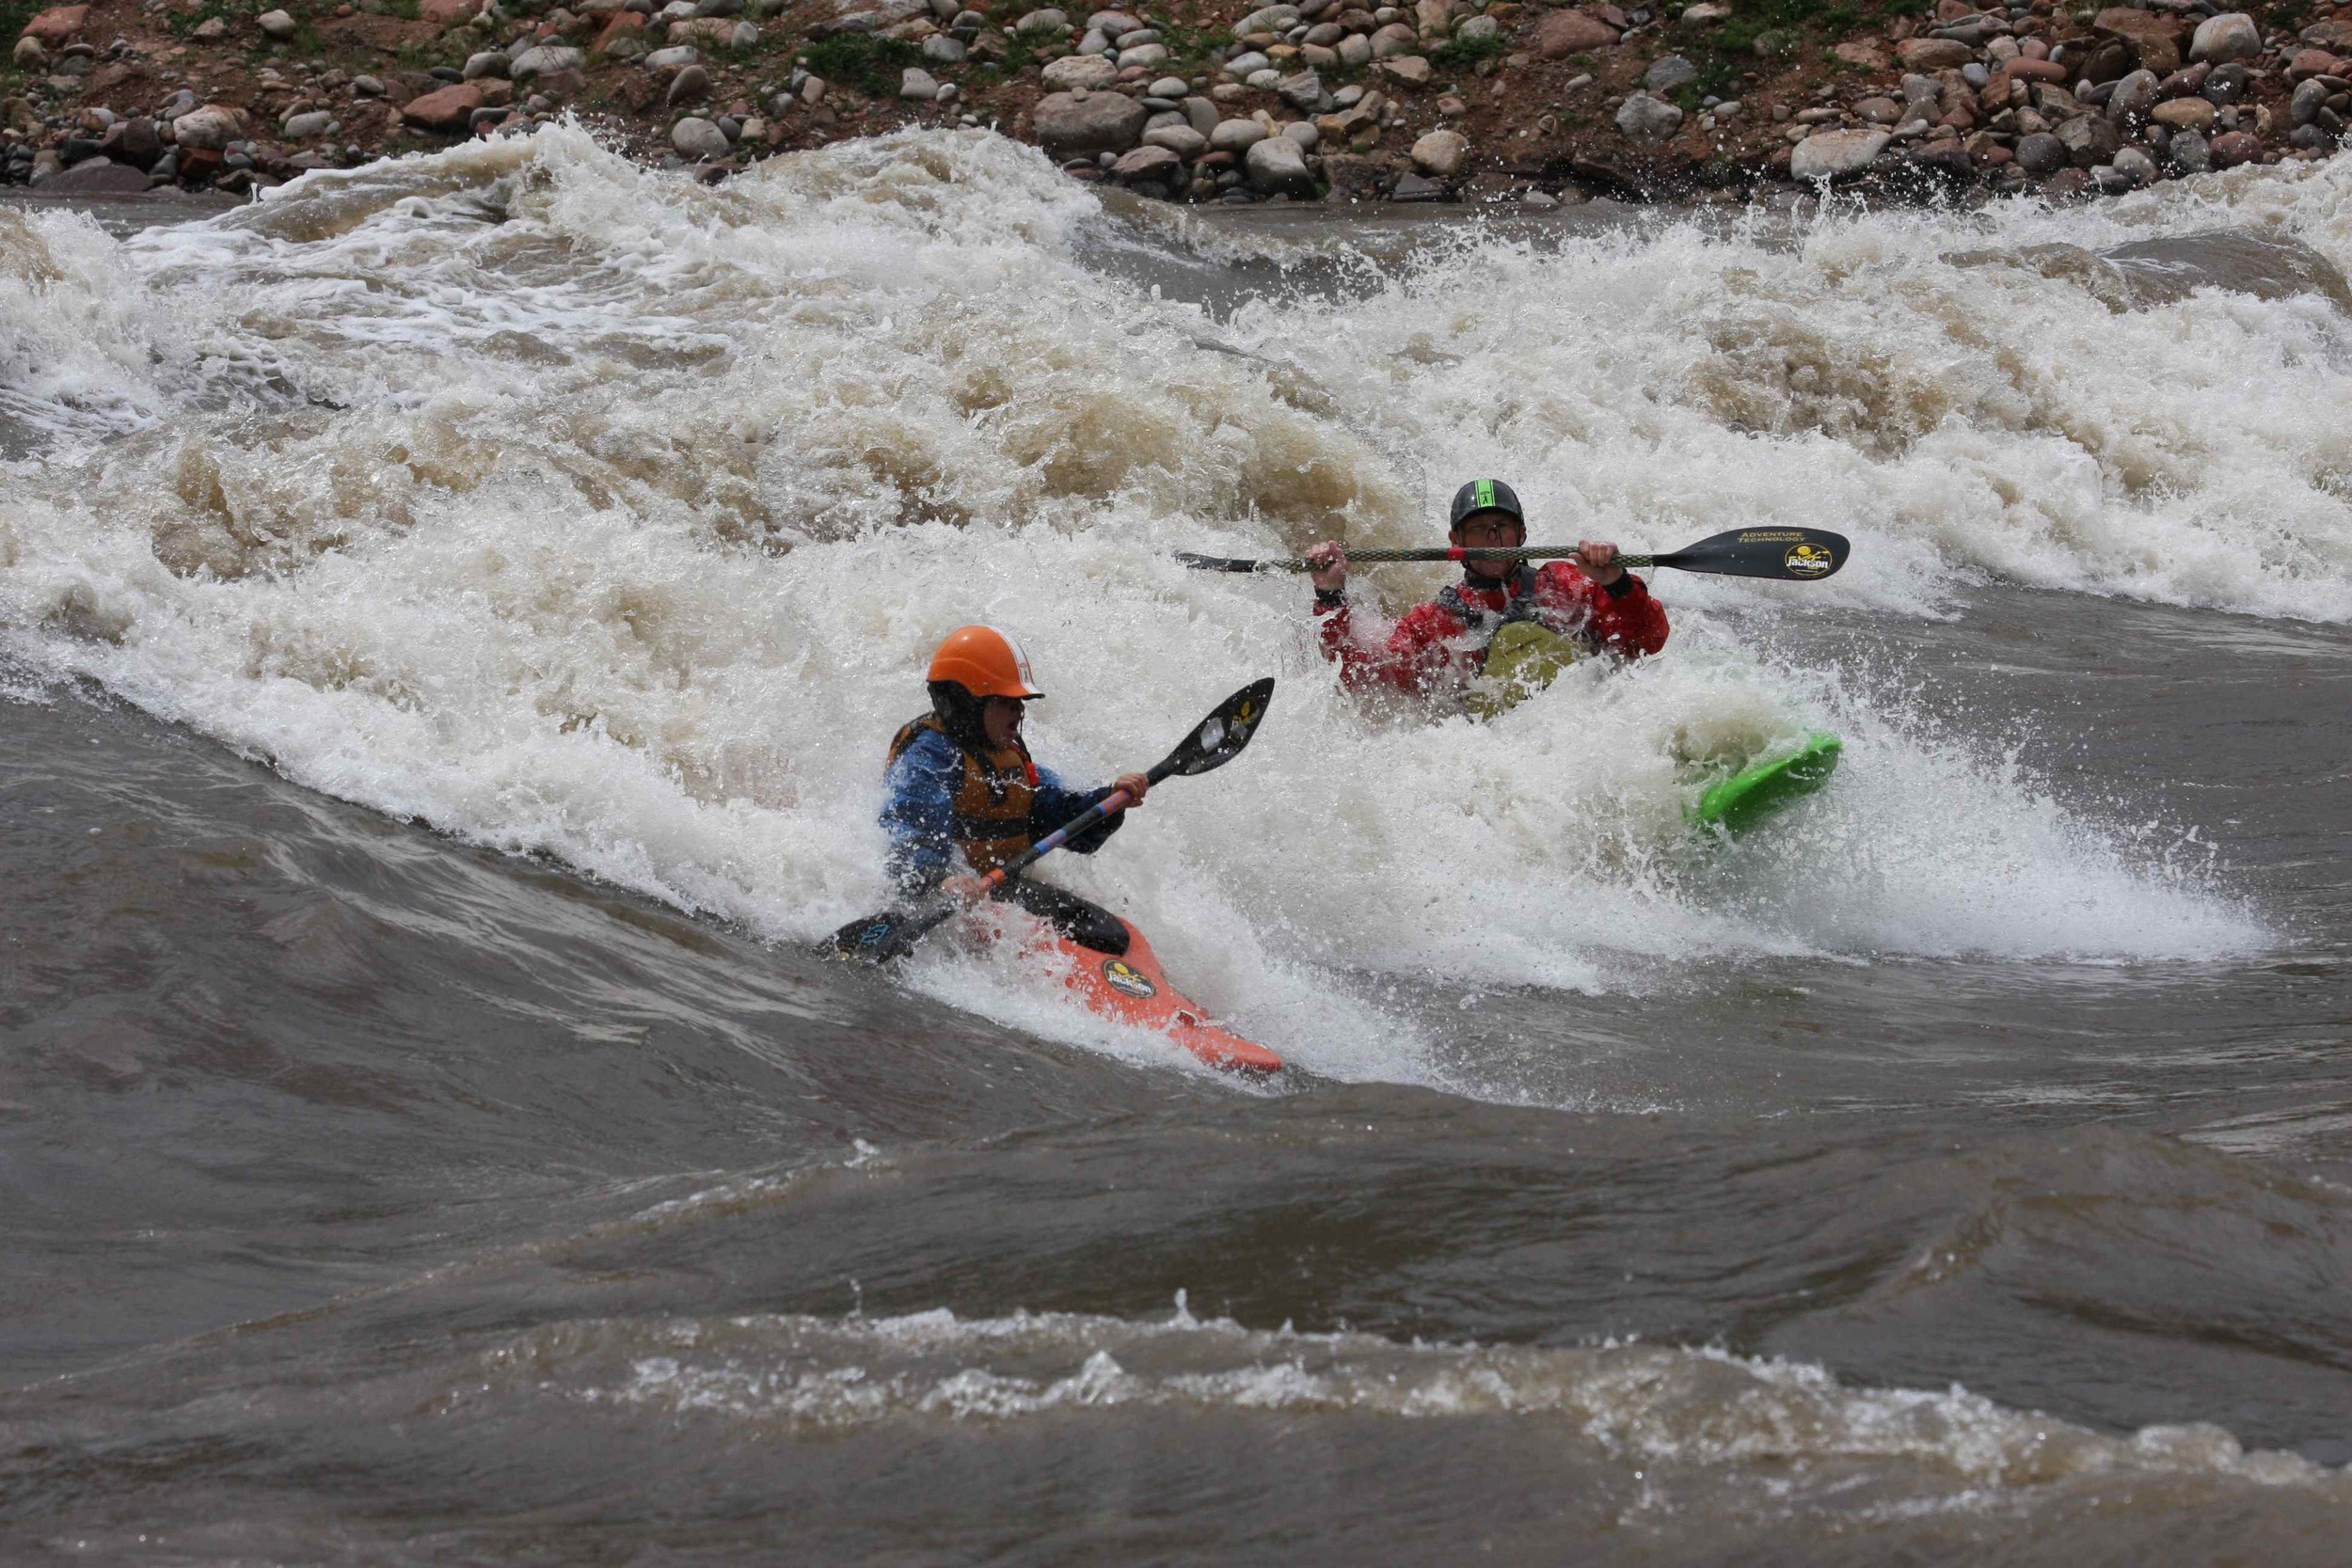 Sage and Dad on the Glenwood Wave